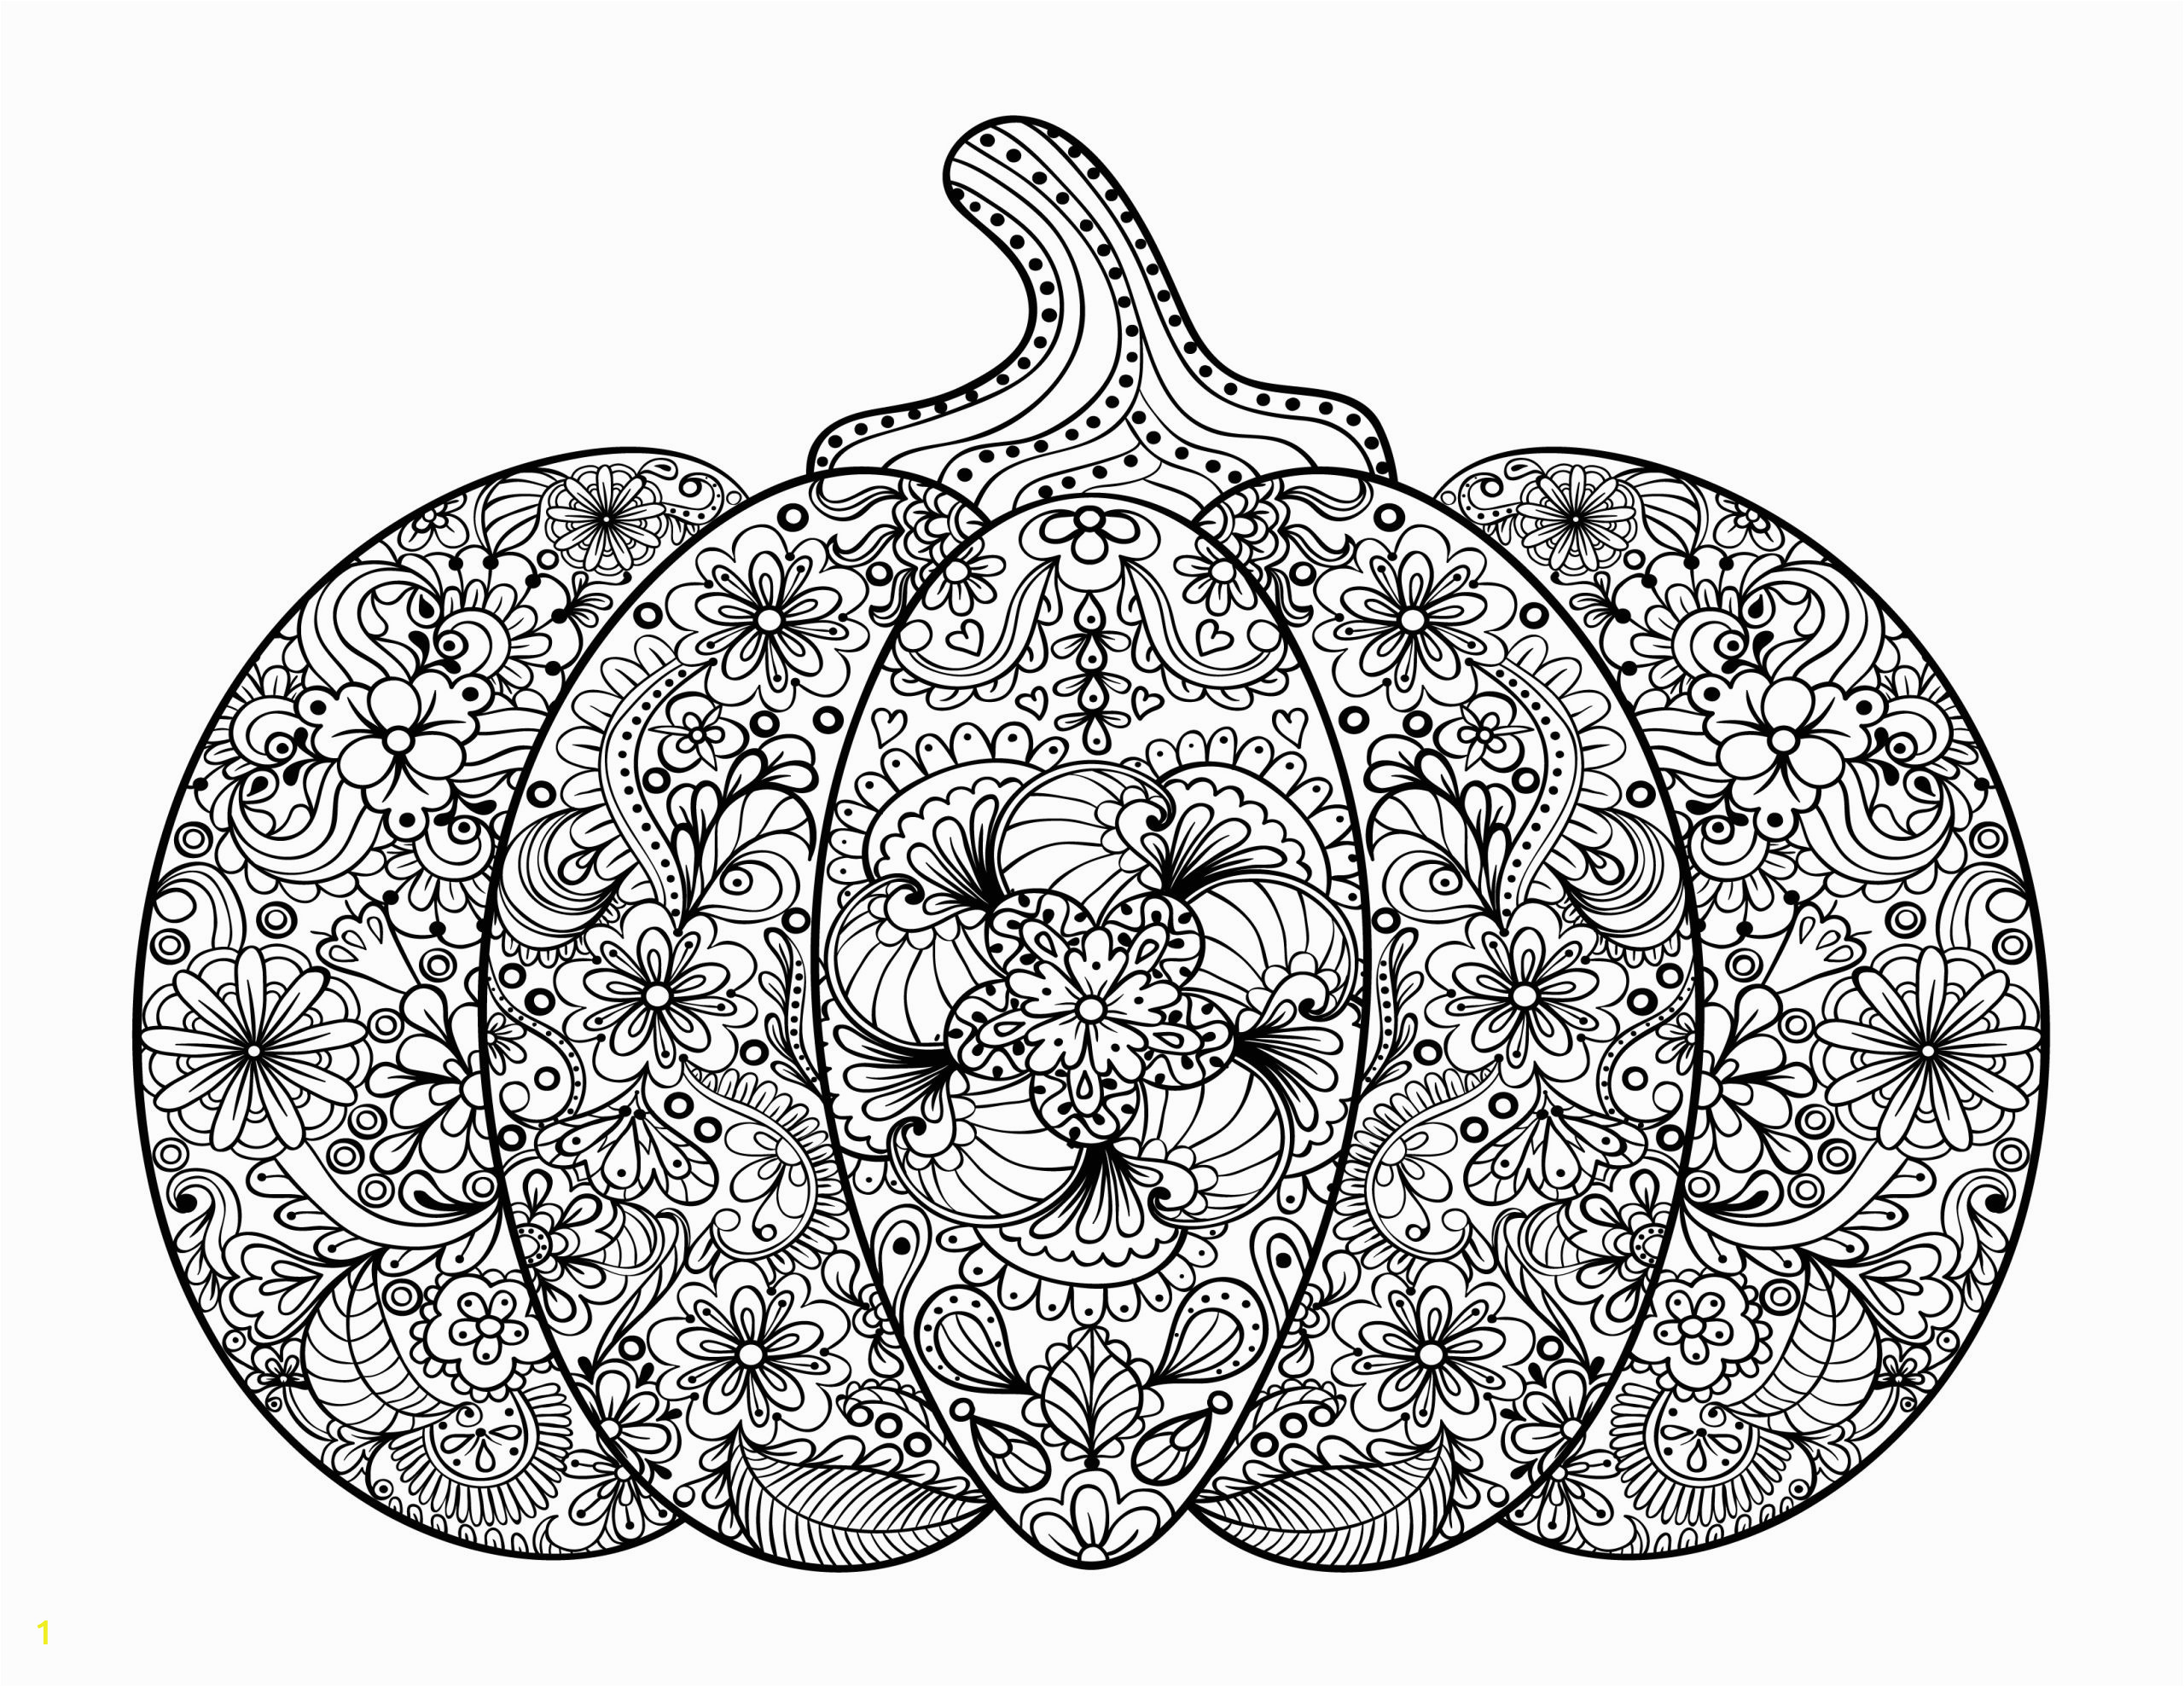 new adult coloring pages pj masks halloween blank pumpkin muscle car book printable princess letter goosebumps animal zentangle mandala meditation sports school puter earth day scaled